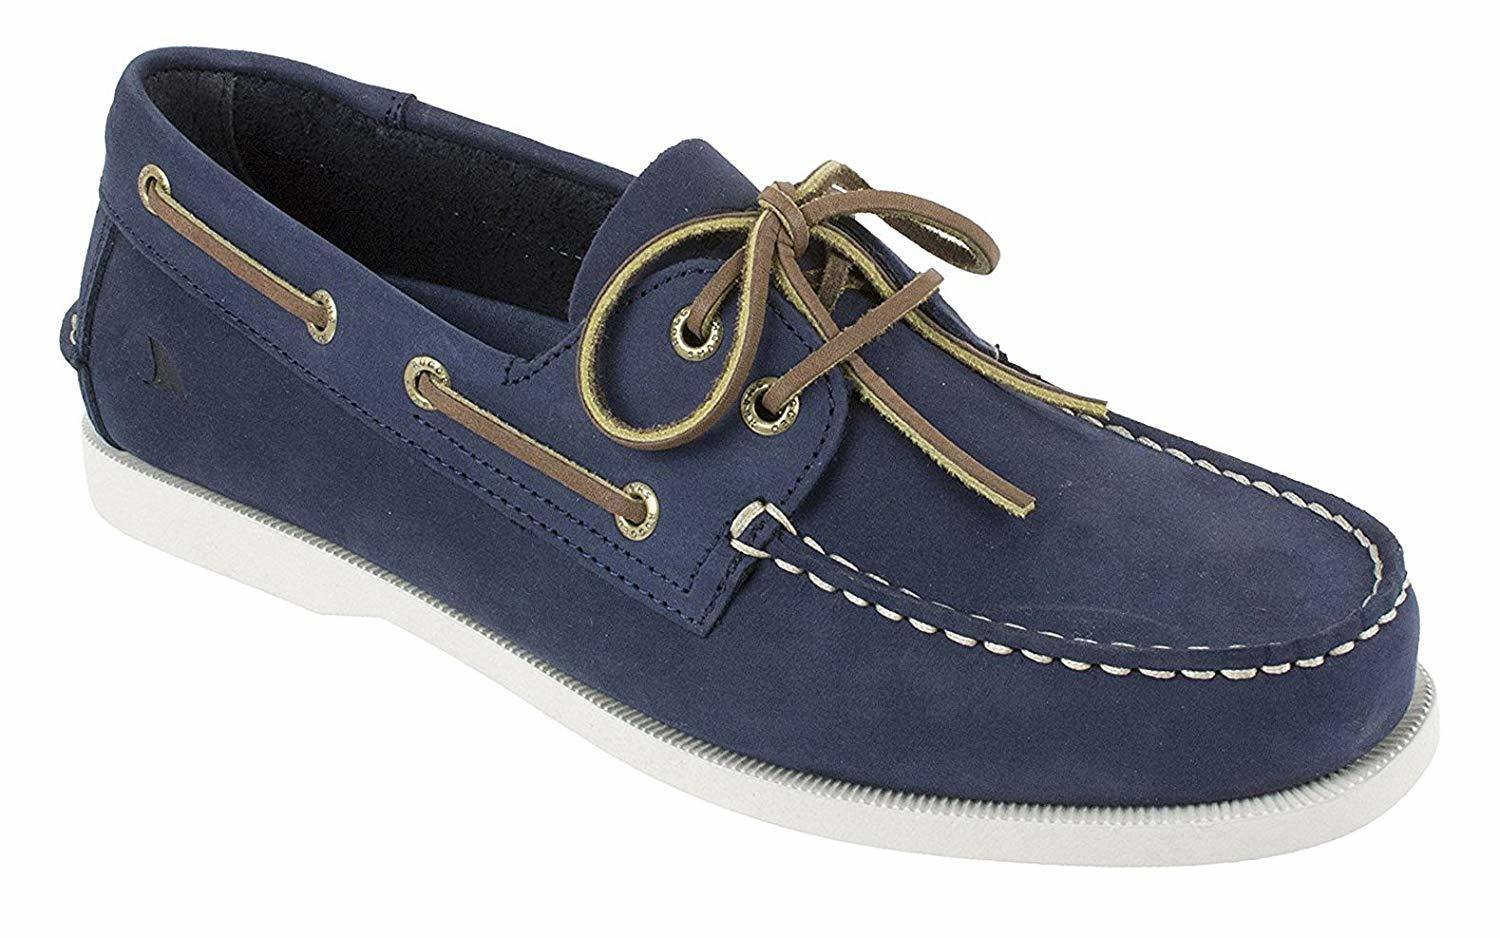 best shoes for boating